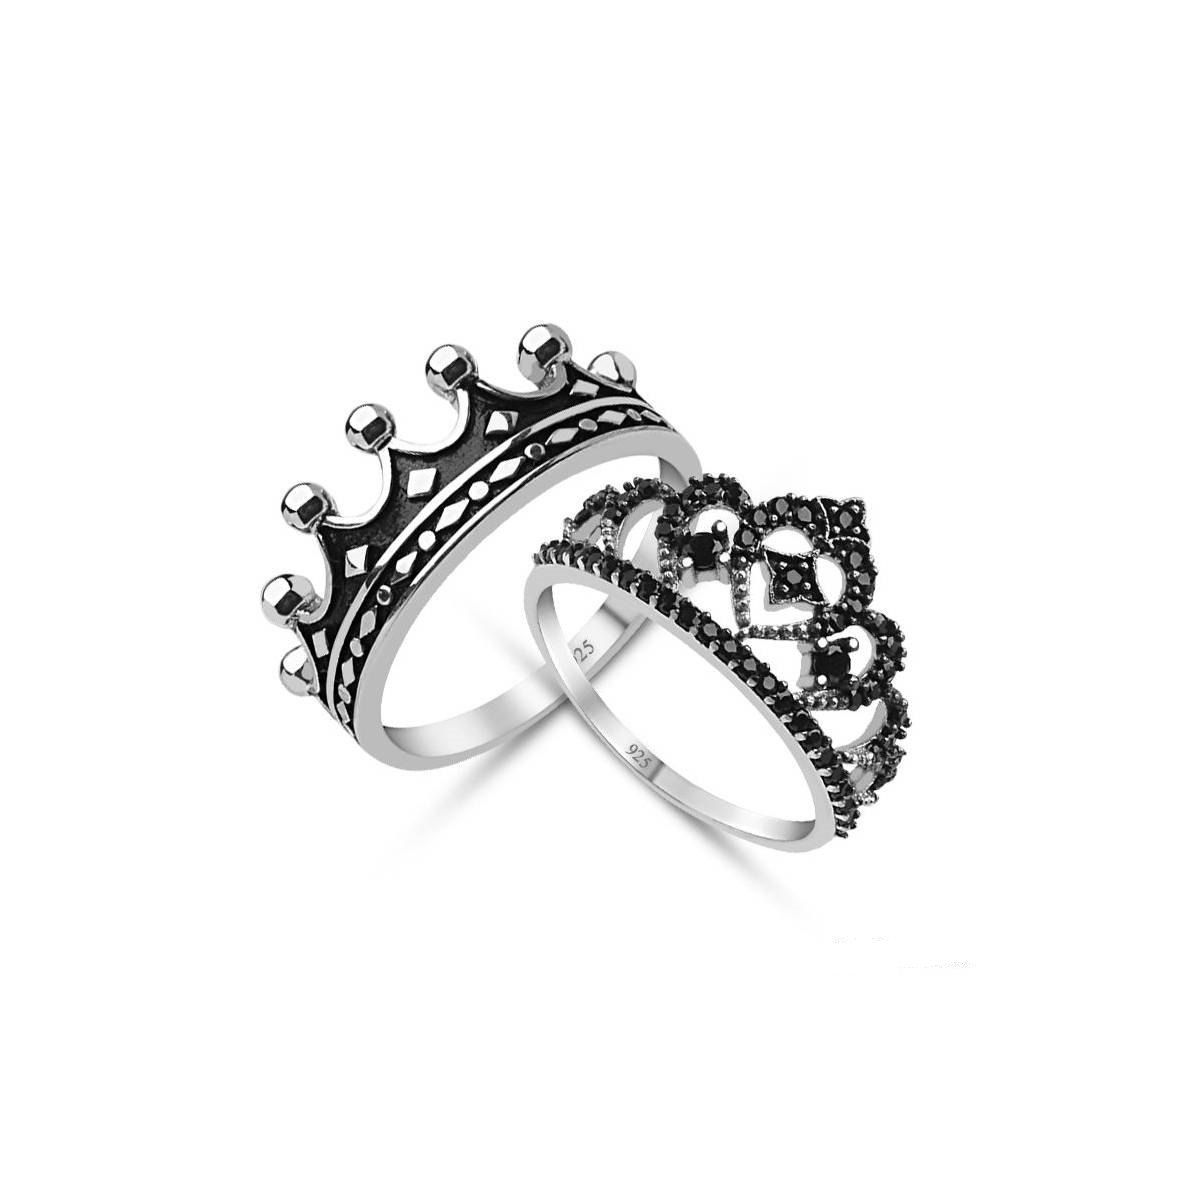 76c780b842dd4f King & Queen,crown ring set,18k gold plated silver crown ring set,tiara  rings,mens crown ring,princess crownd ring,crown band – UNIQUENEWLINE